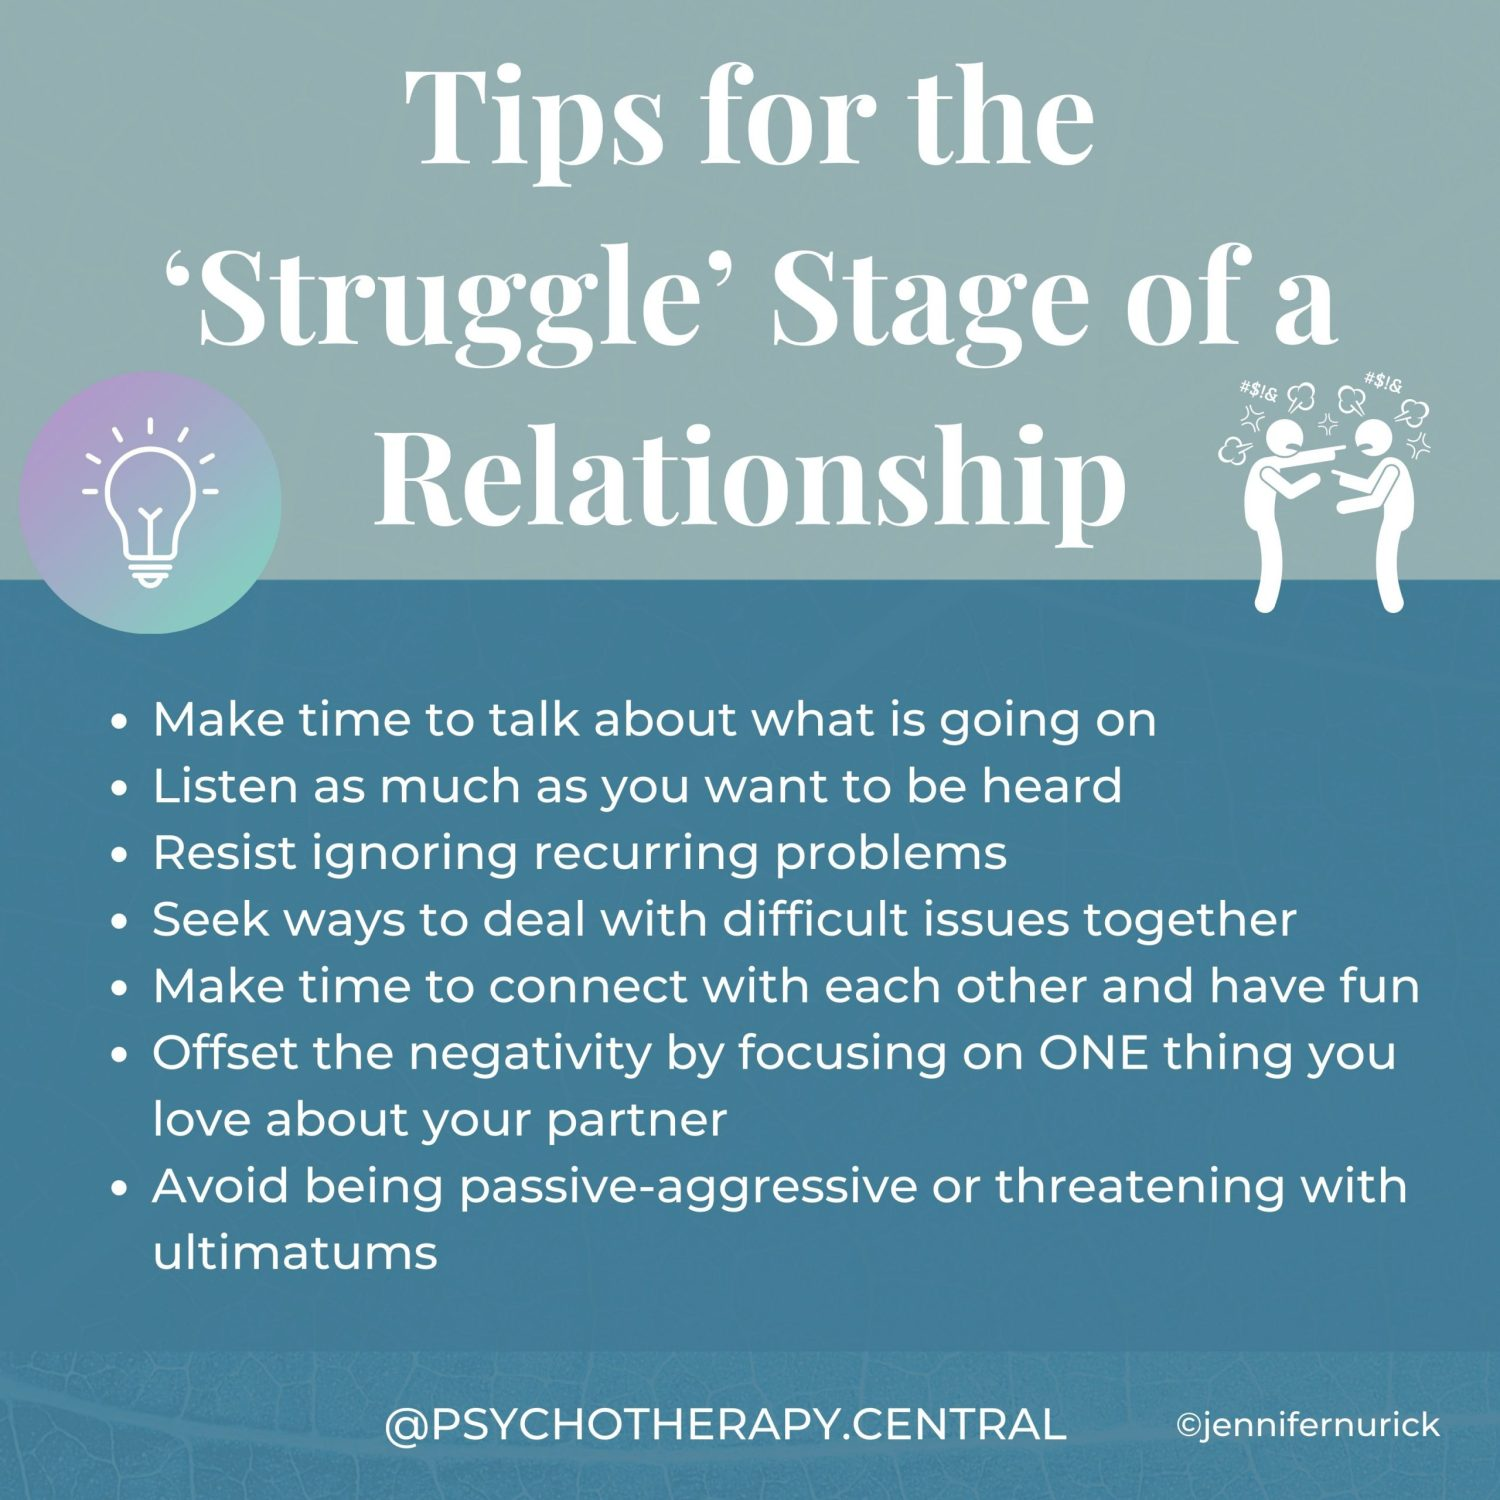 Tips for the 'Struggle' Stage of a Relationship Make time to talk about what is going on Listen as much as you want to be heard Resist ignoring recurring problems Seek ways to deal with difficult issues together Make time to connect with each other and have fun Offset the negativity by focusing on ONE thing you love about your partner Avoid being passive-aggressive or threatening with ultimatums